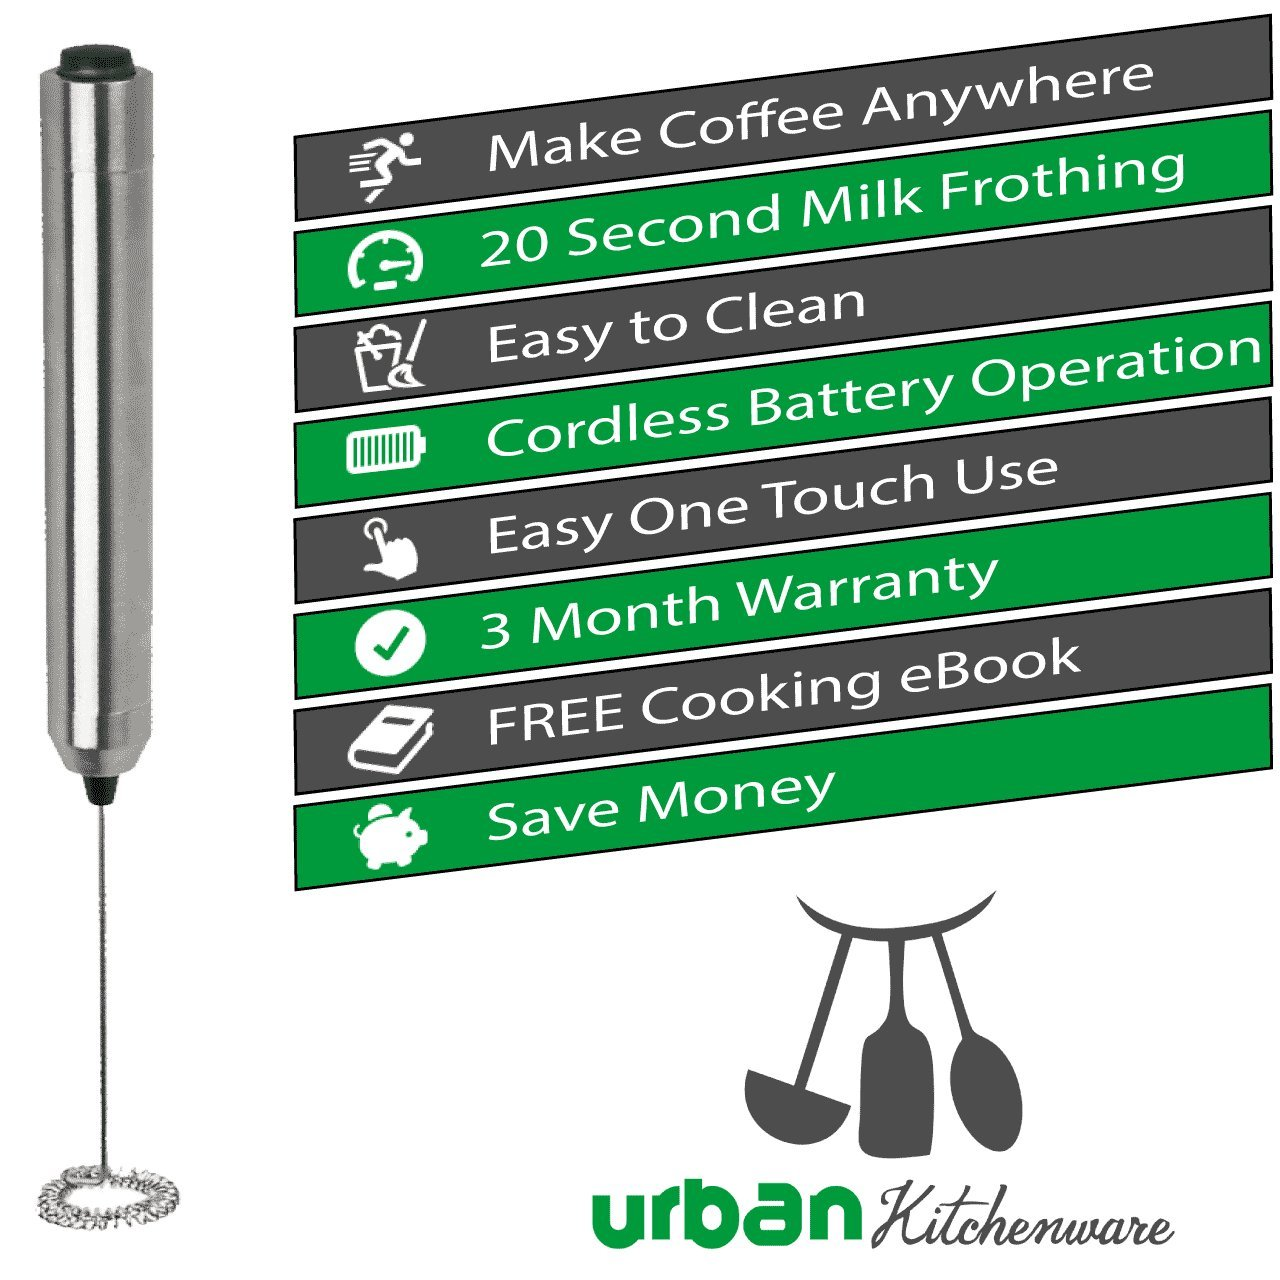 Electric Milk Frother - Premium One Touch Handheld Stainless Steel Home Coffee Frother - Designer Milk Foam Maker and Drink Mixer - Hassle Free Easy to Use and Clean Wand Mixer